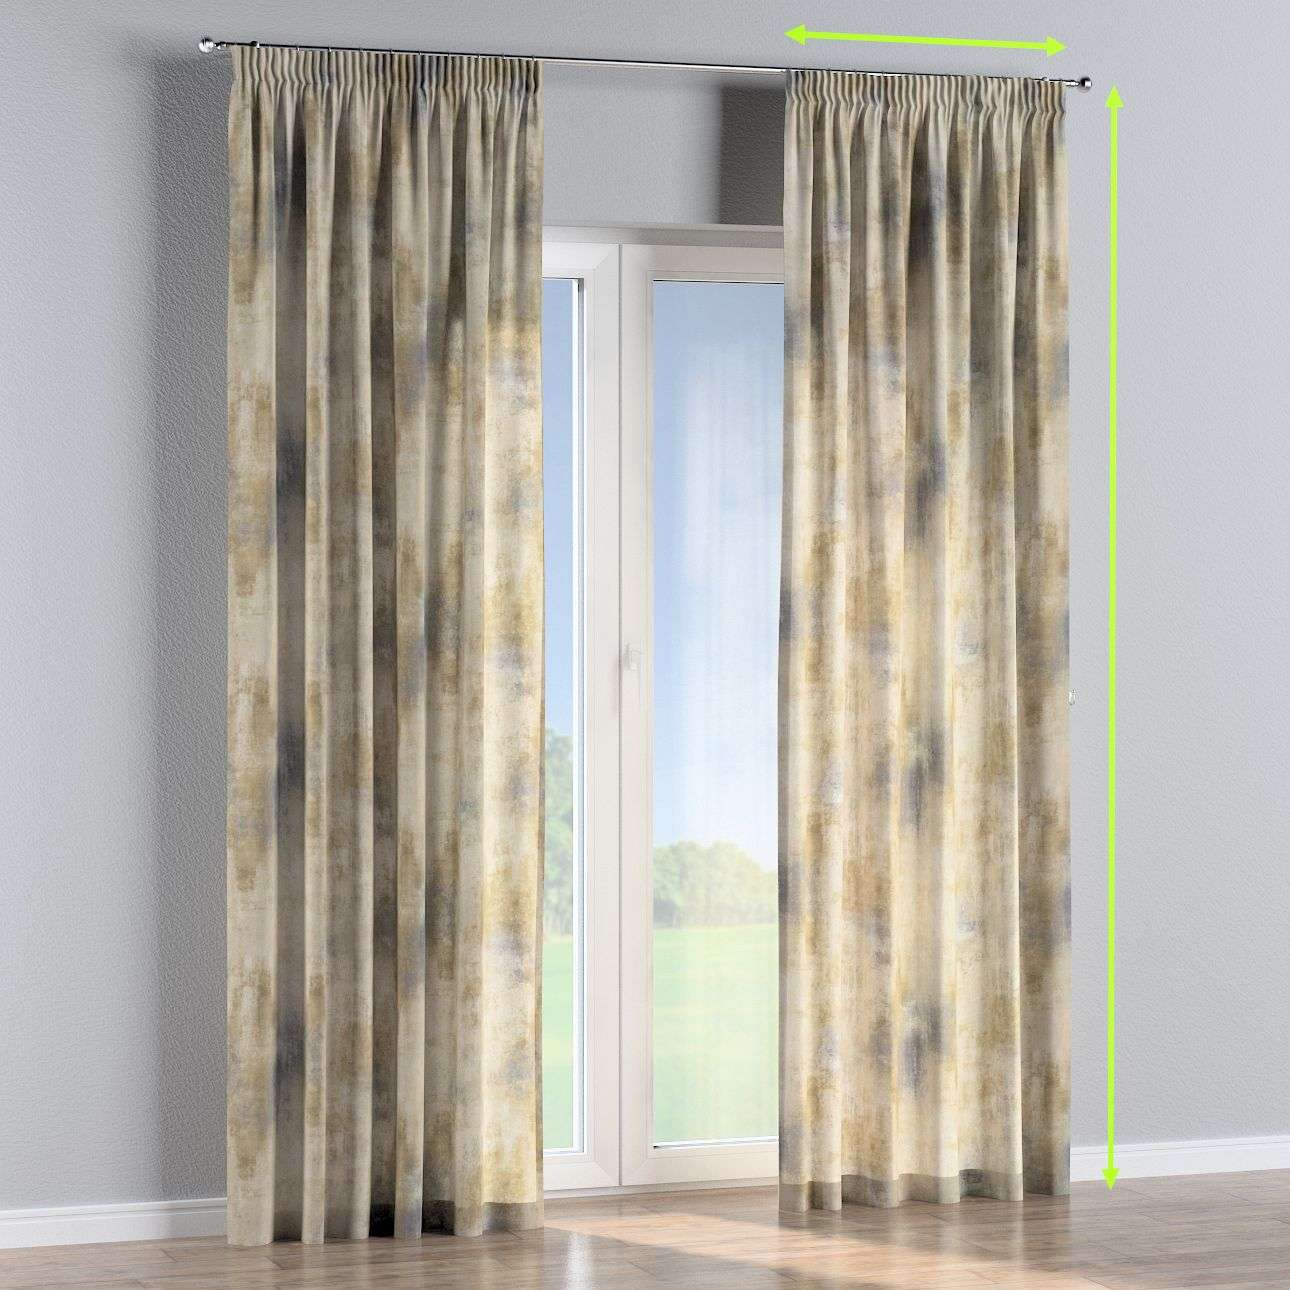 Pencil pleat curtains in collection Urban Jungle, fabric: 141-23